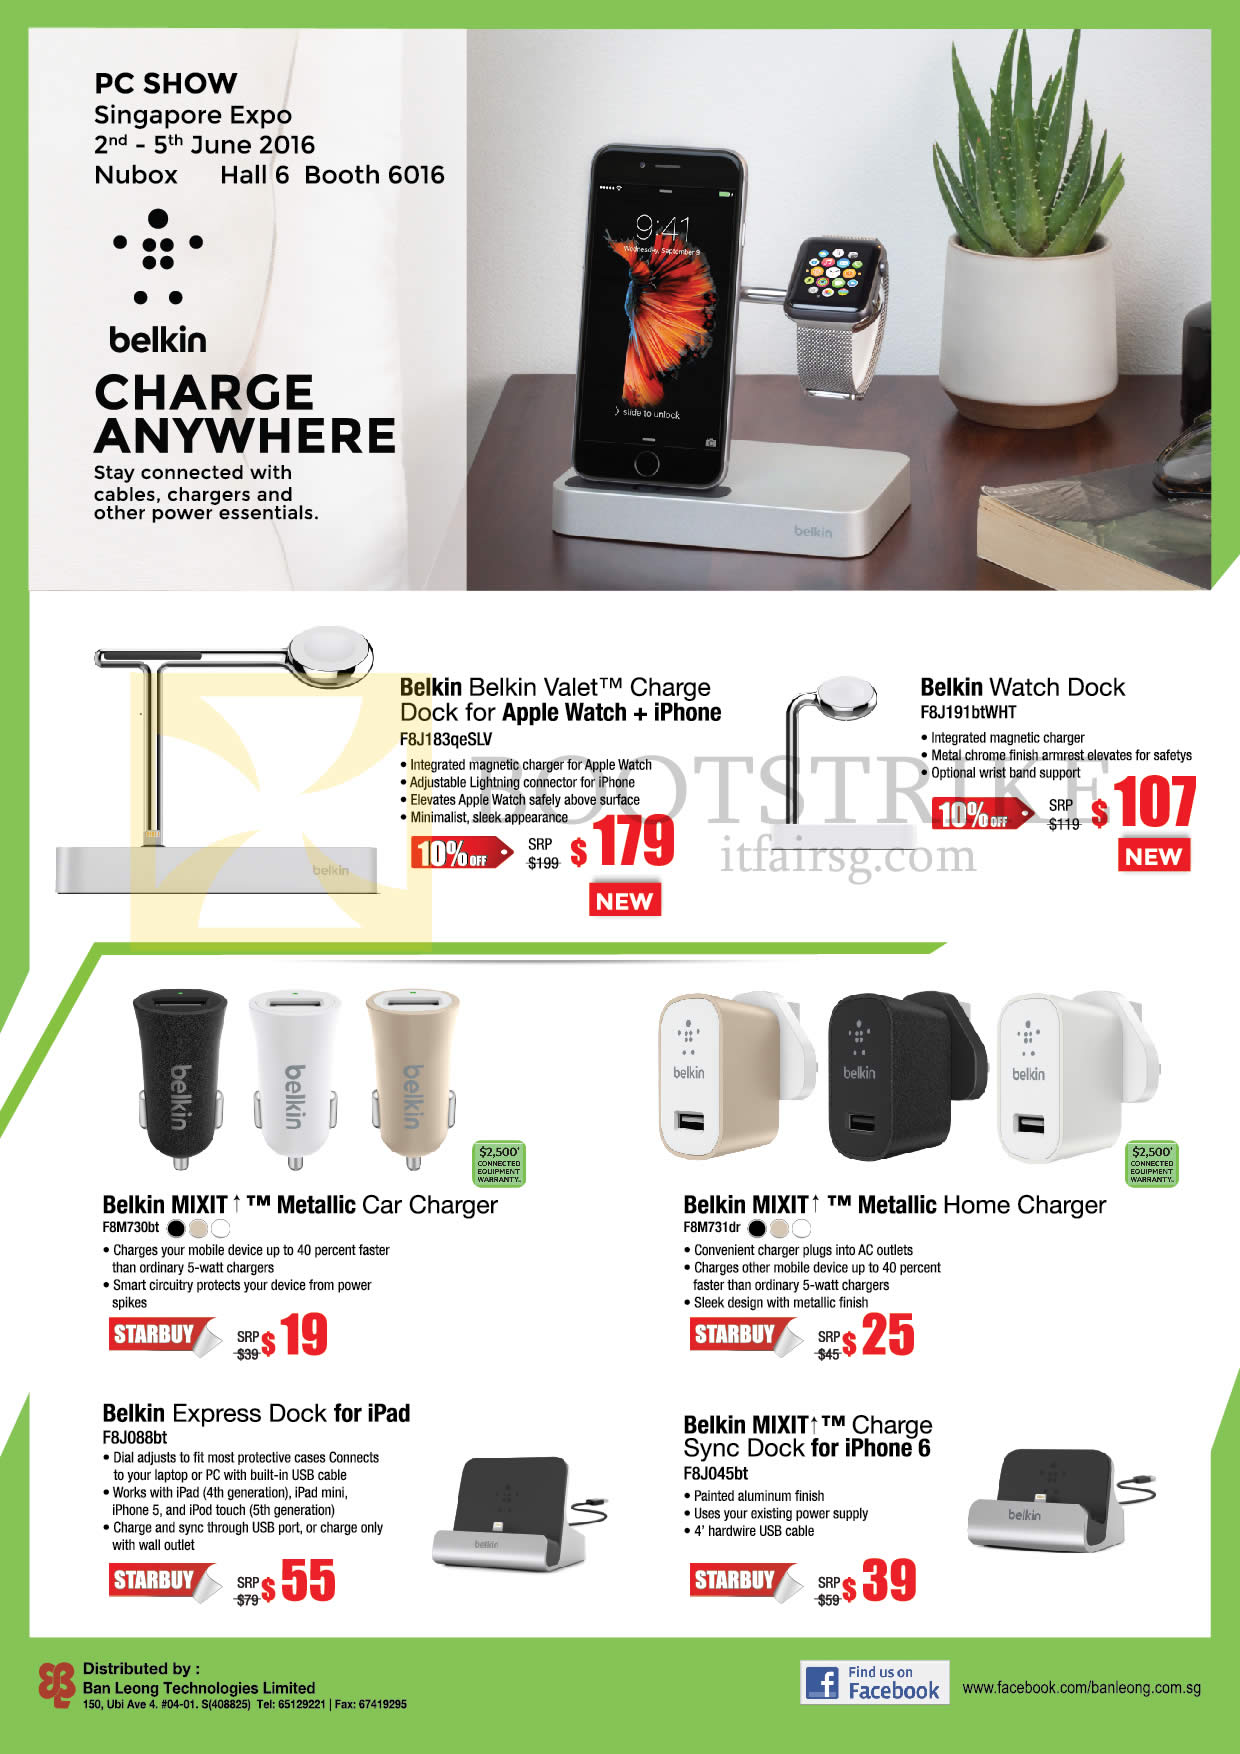 PC SHOW 2016 price list image brochure of Nubox Belkin Valet Charge, Watch Dock, Mixit Car Charger, Express Dock, Sync Dock